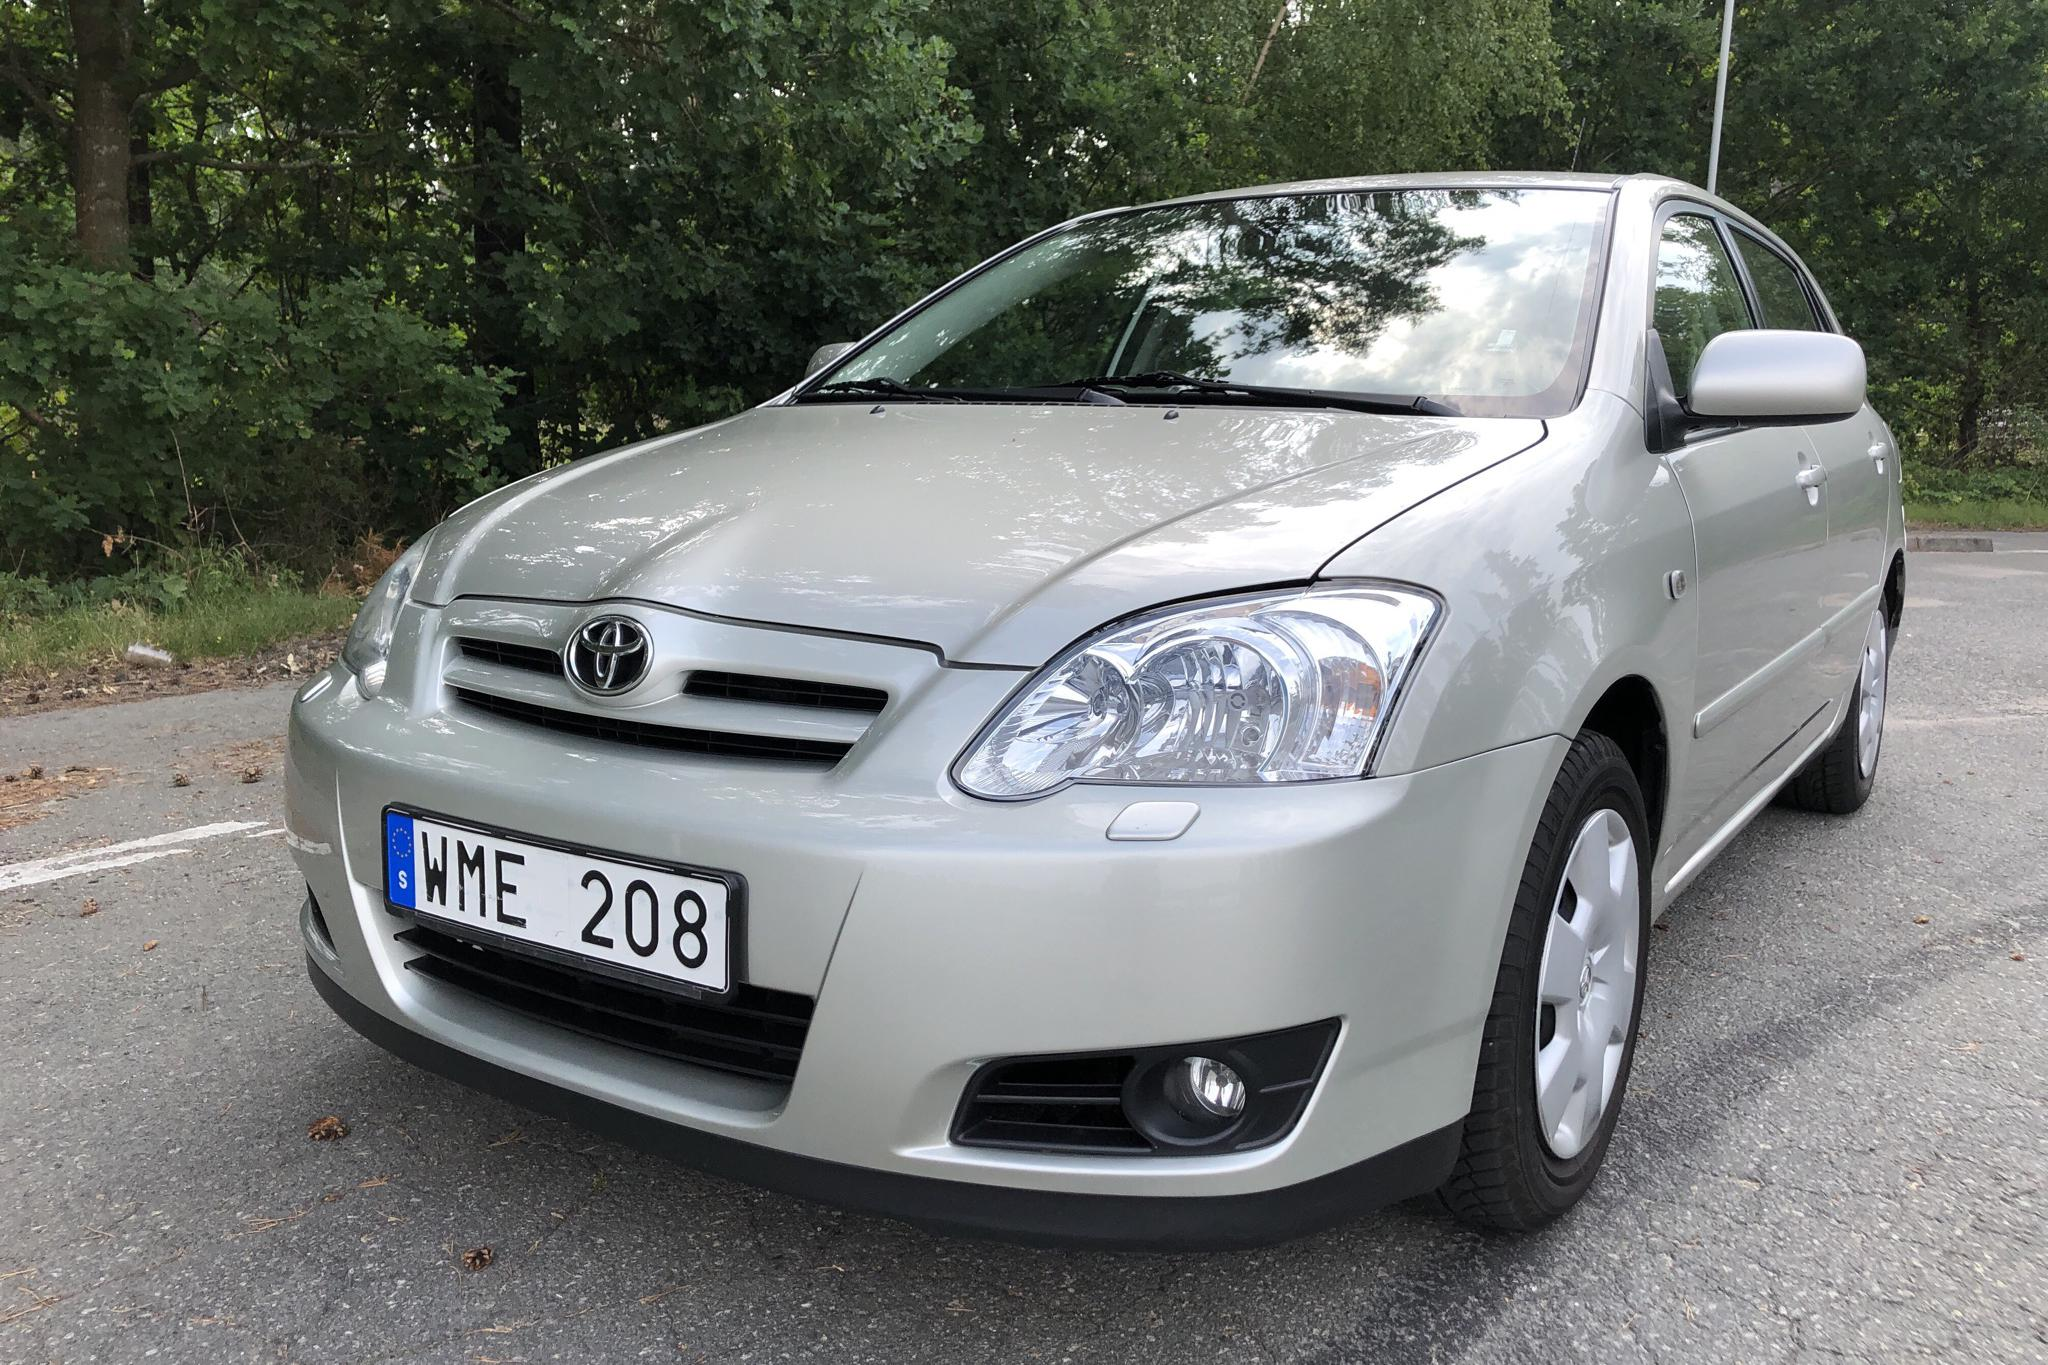 Toyota Corolla 1.6 5dr (110hk) - 9 691 mil - Manuell - silver - 2005